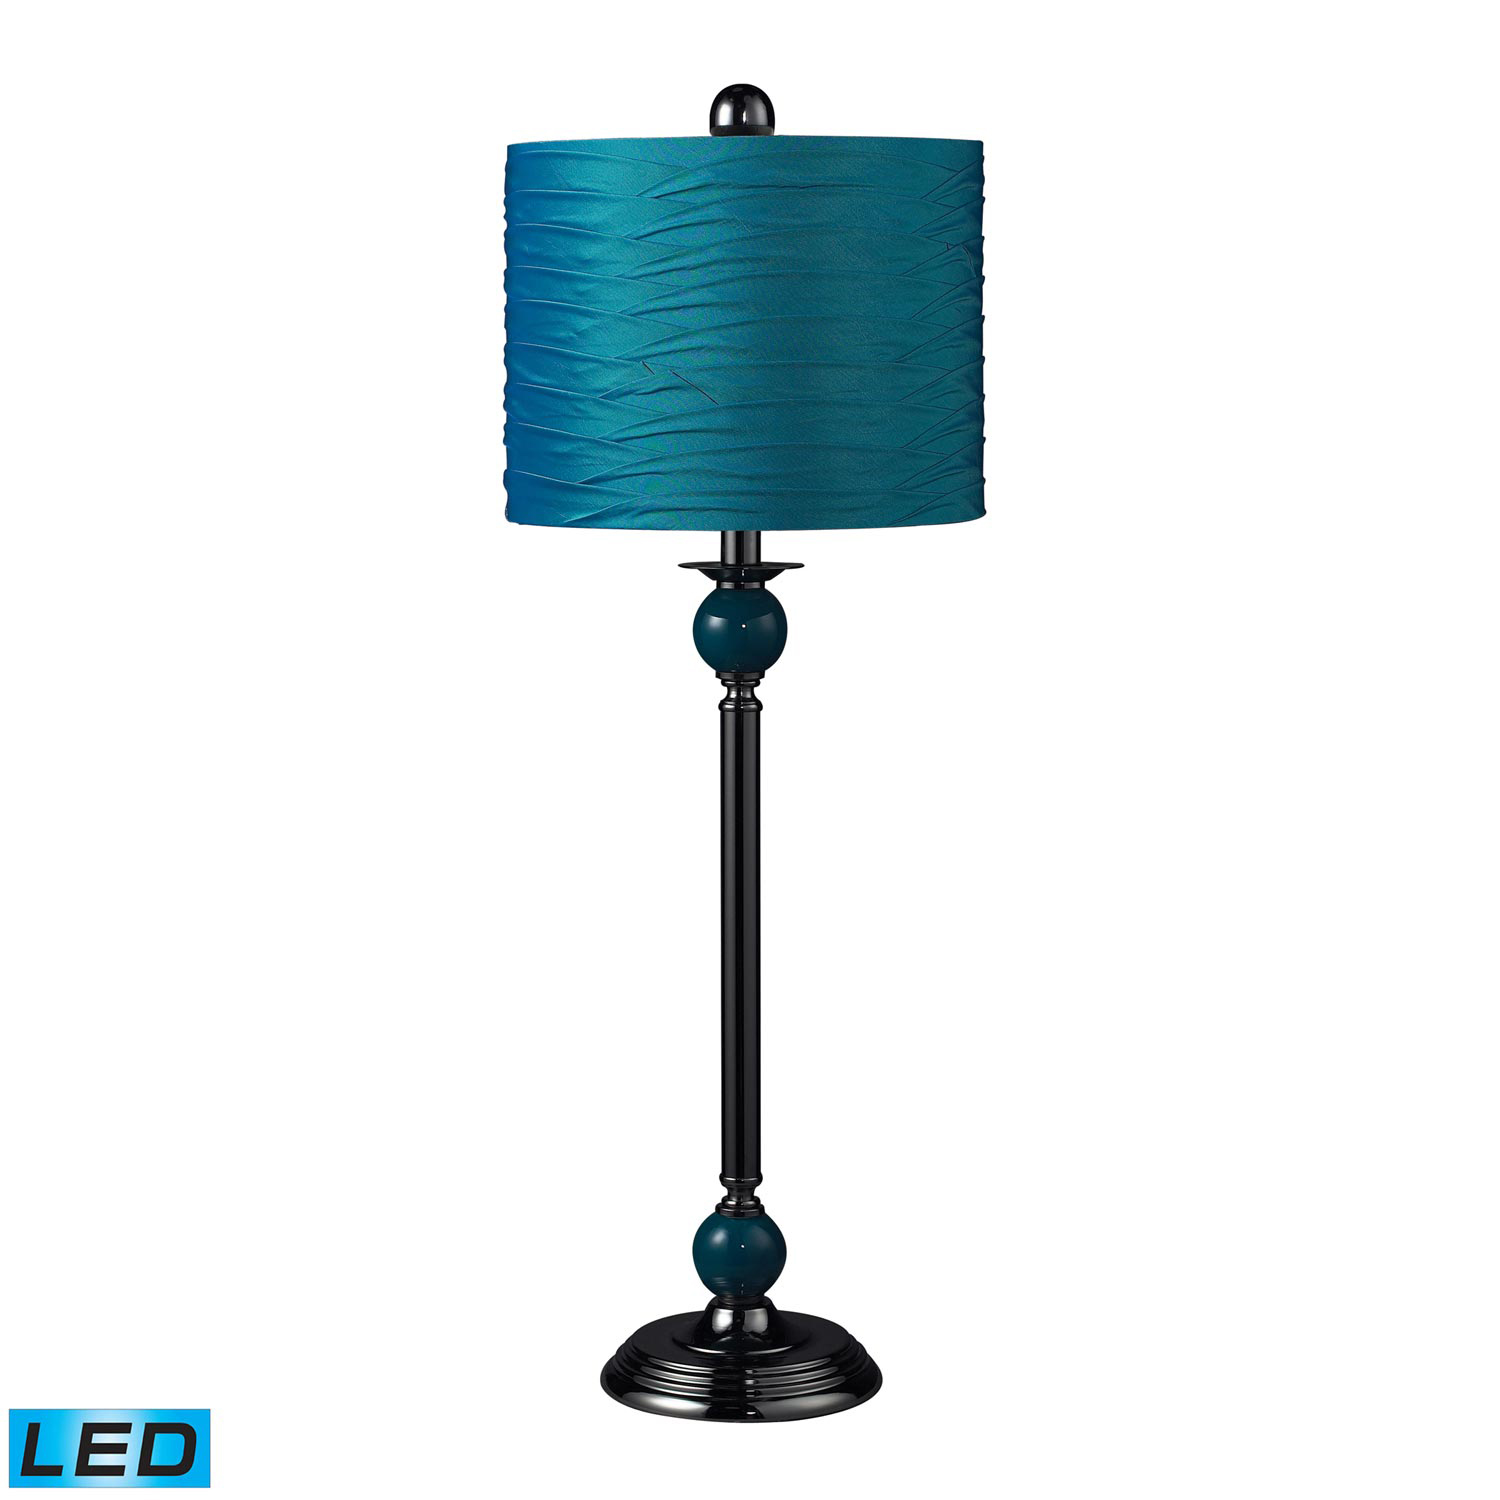 Elk Lighting Carrington Table Lamp - Satin Nickel 111-1113-LED